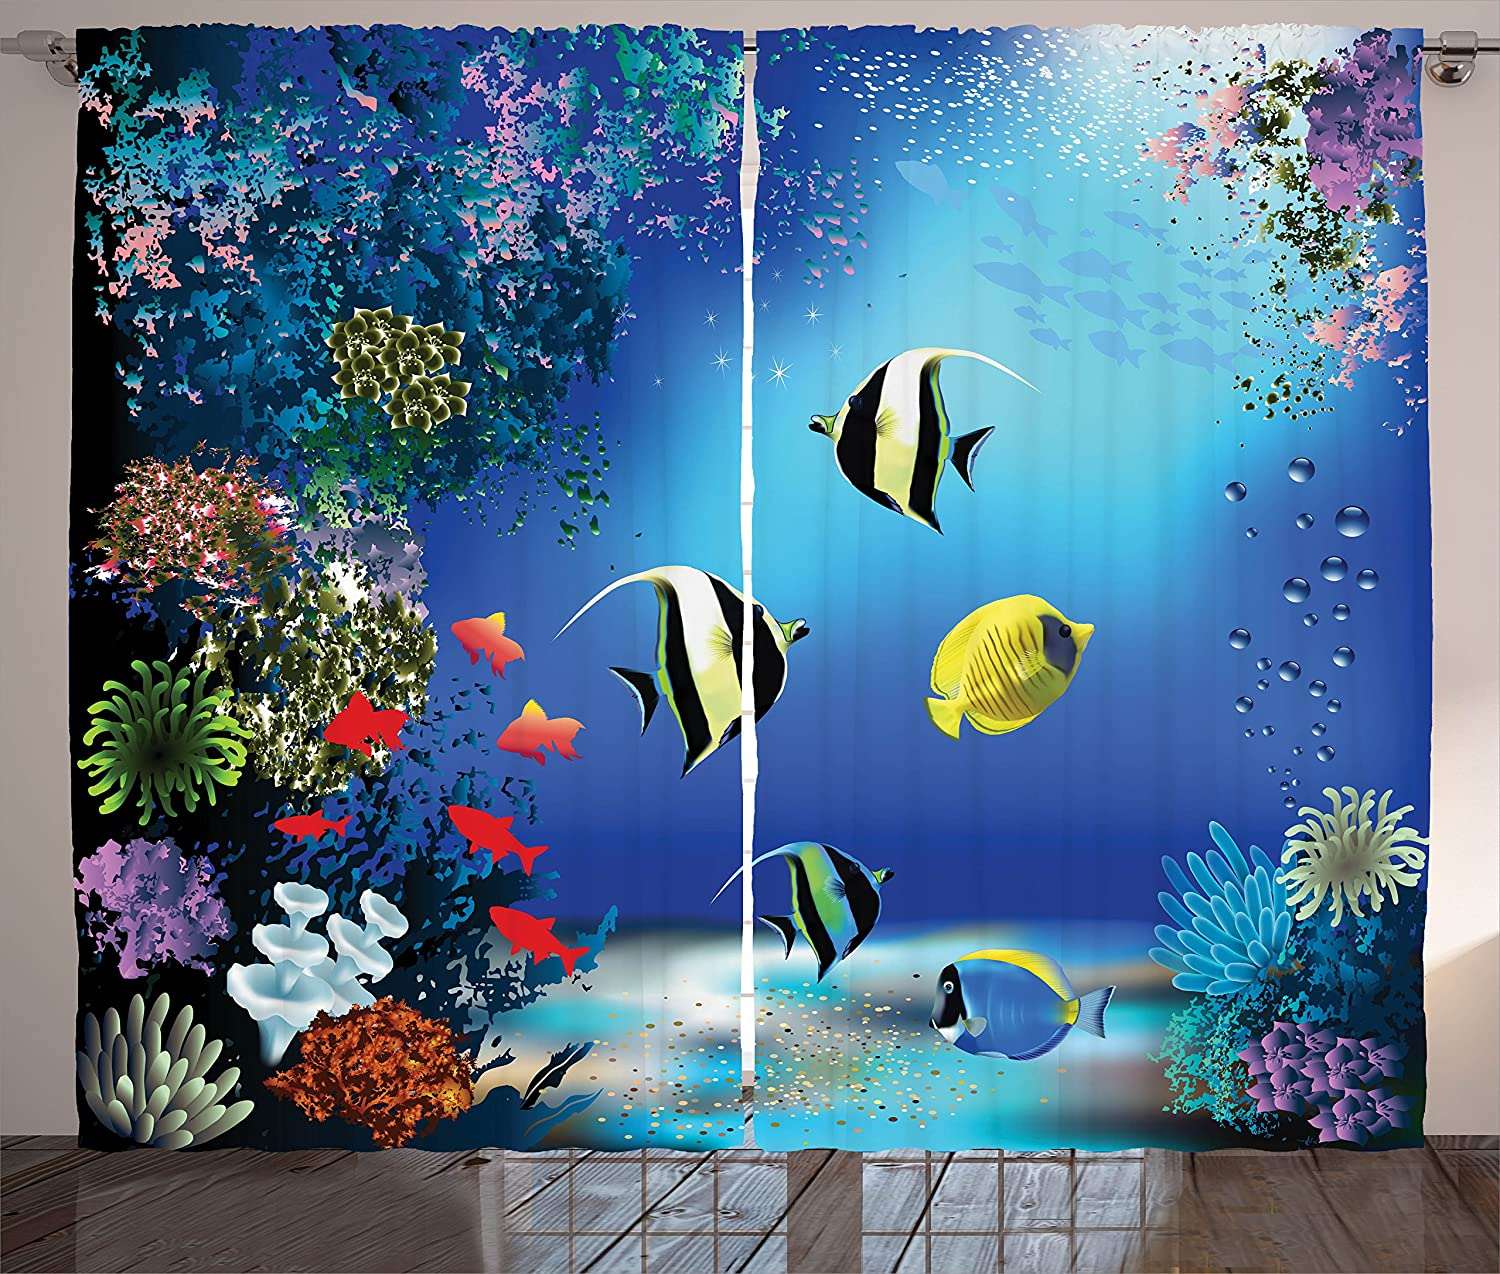 Ambesonne Underwater Curtains, Tropical Undersea with Colorful Fishes Swimming in The Ocean Coral Reefs Artsy Image, Living Room Bedroom Window Drapes 2 Panel Set, 108 W X 90 L Inches, Blue